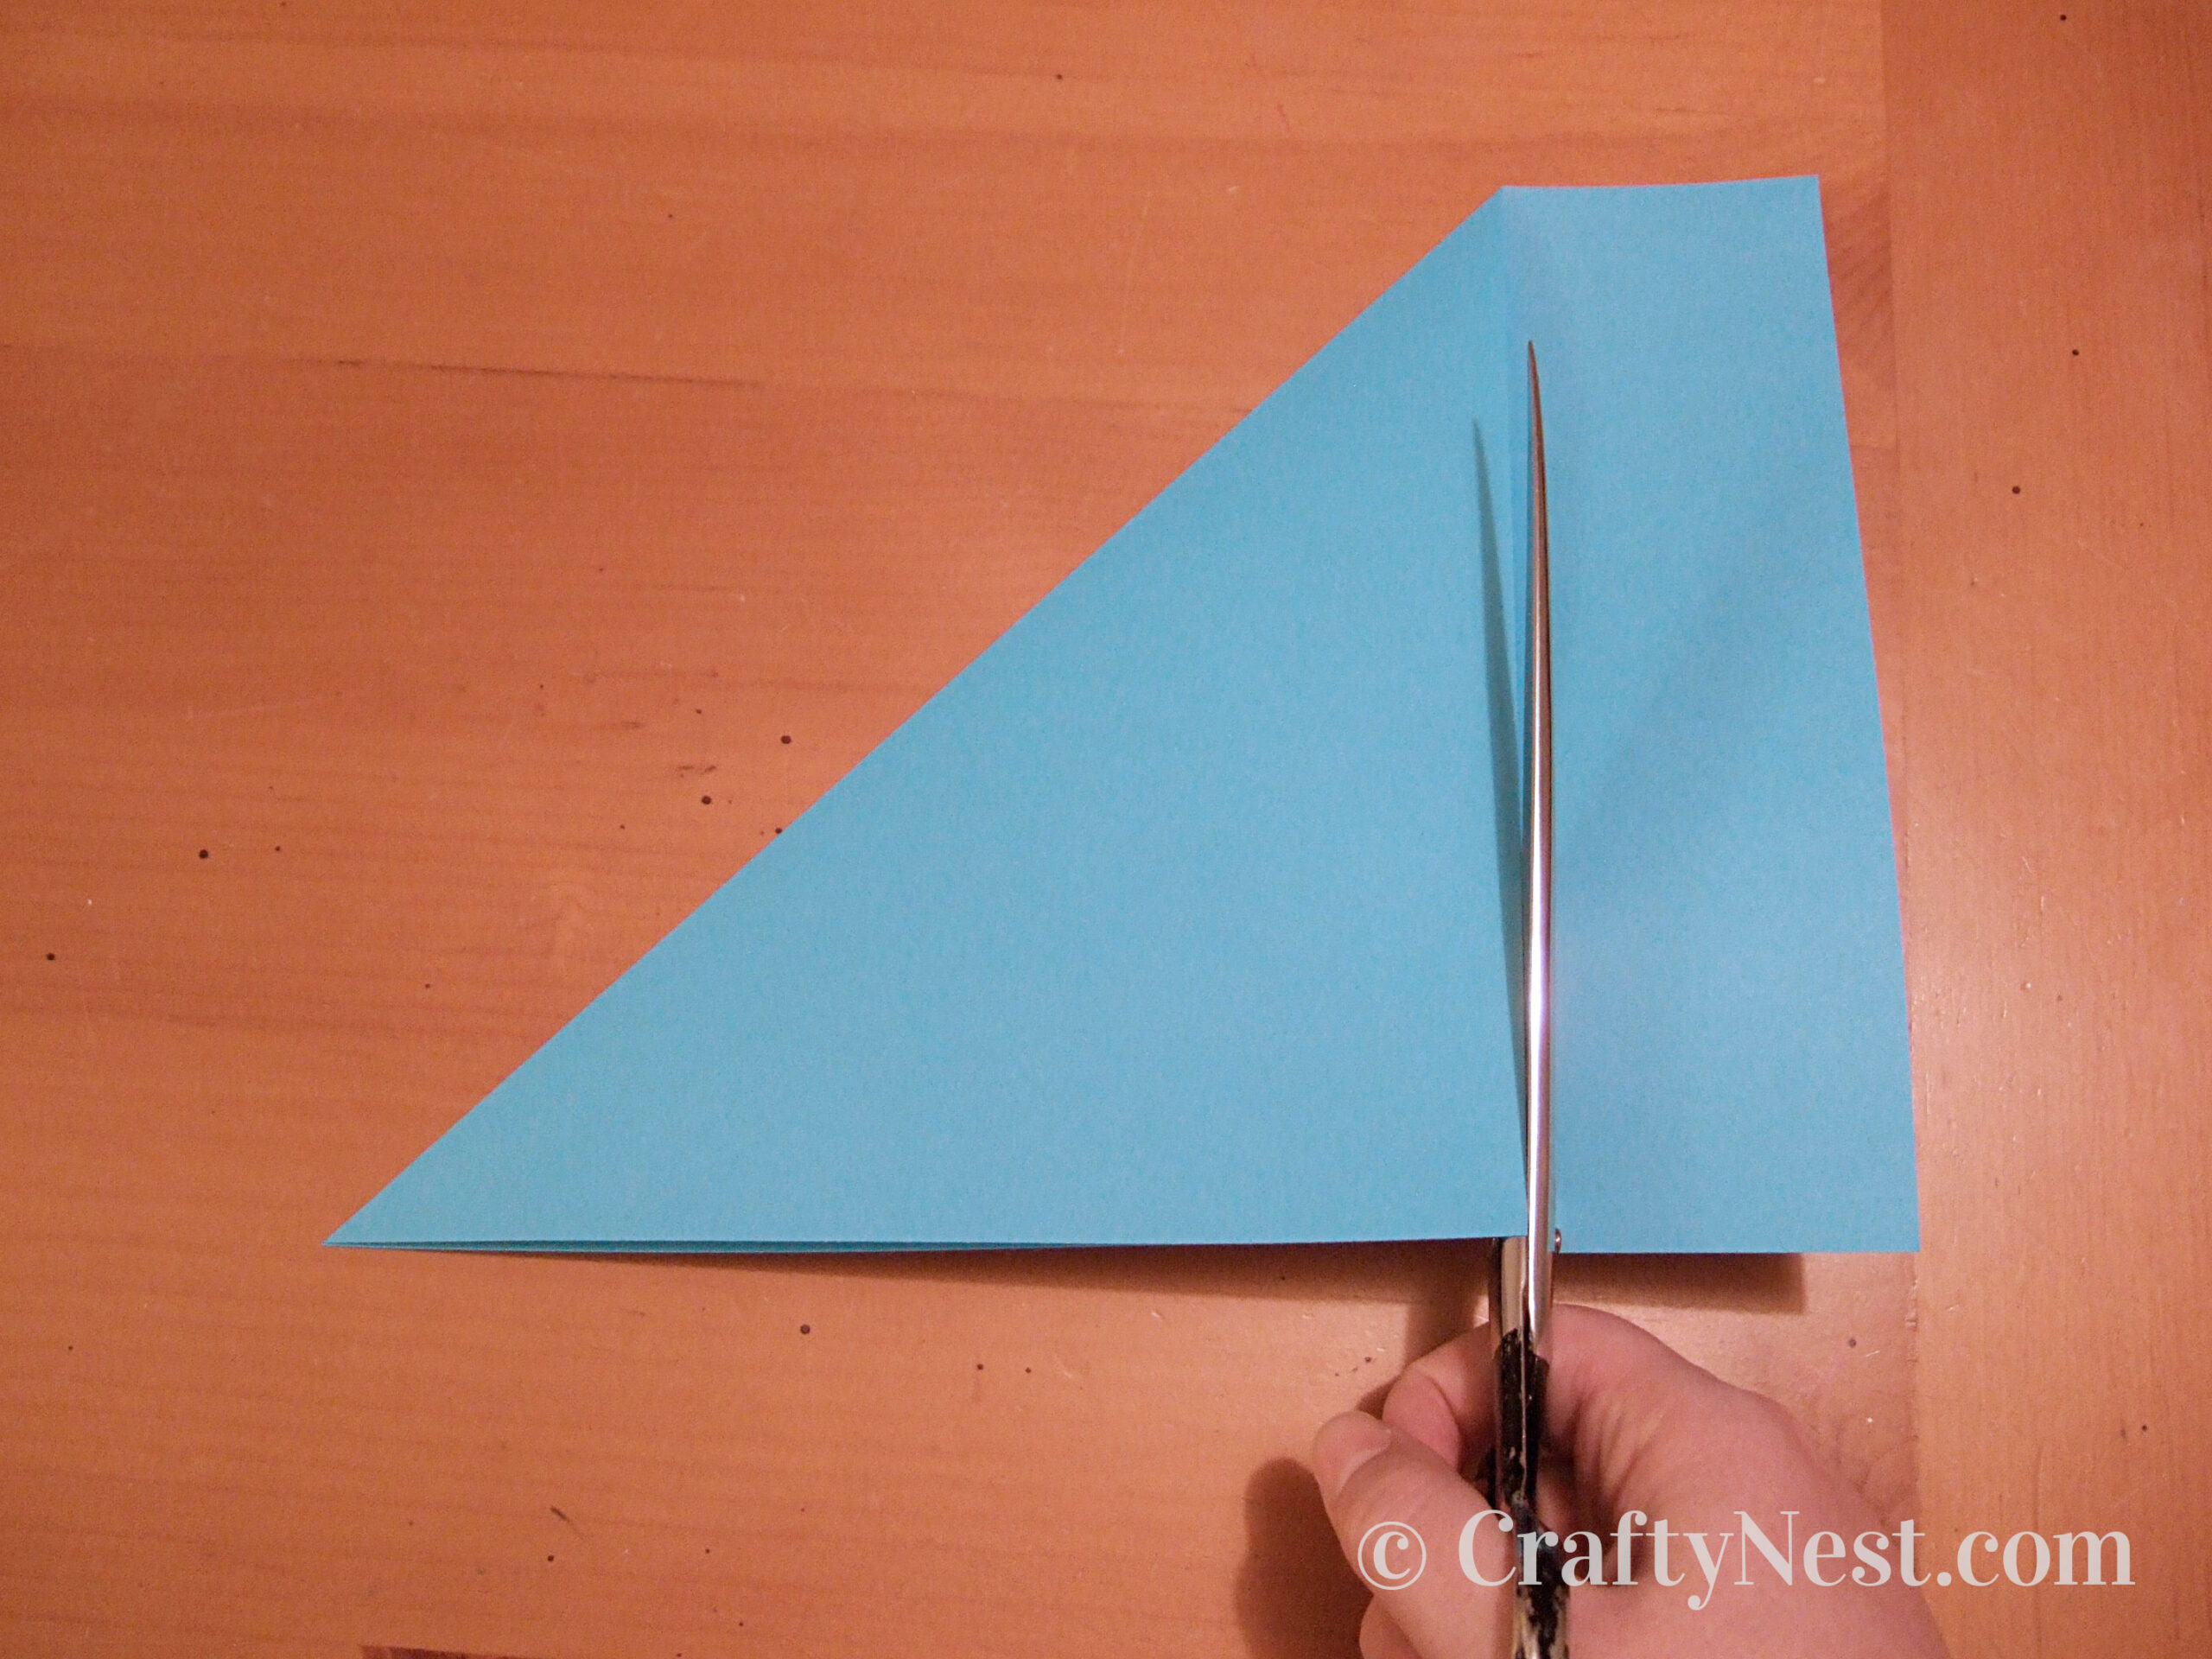 Cutting paper into a square, photo